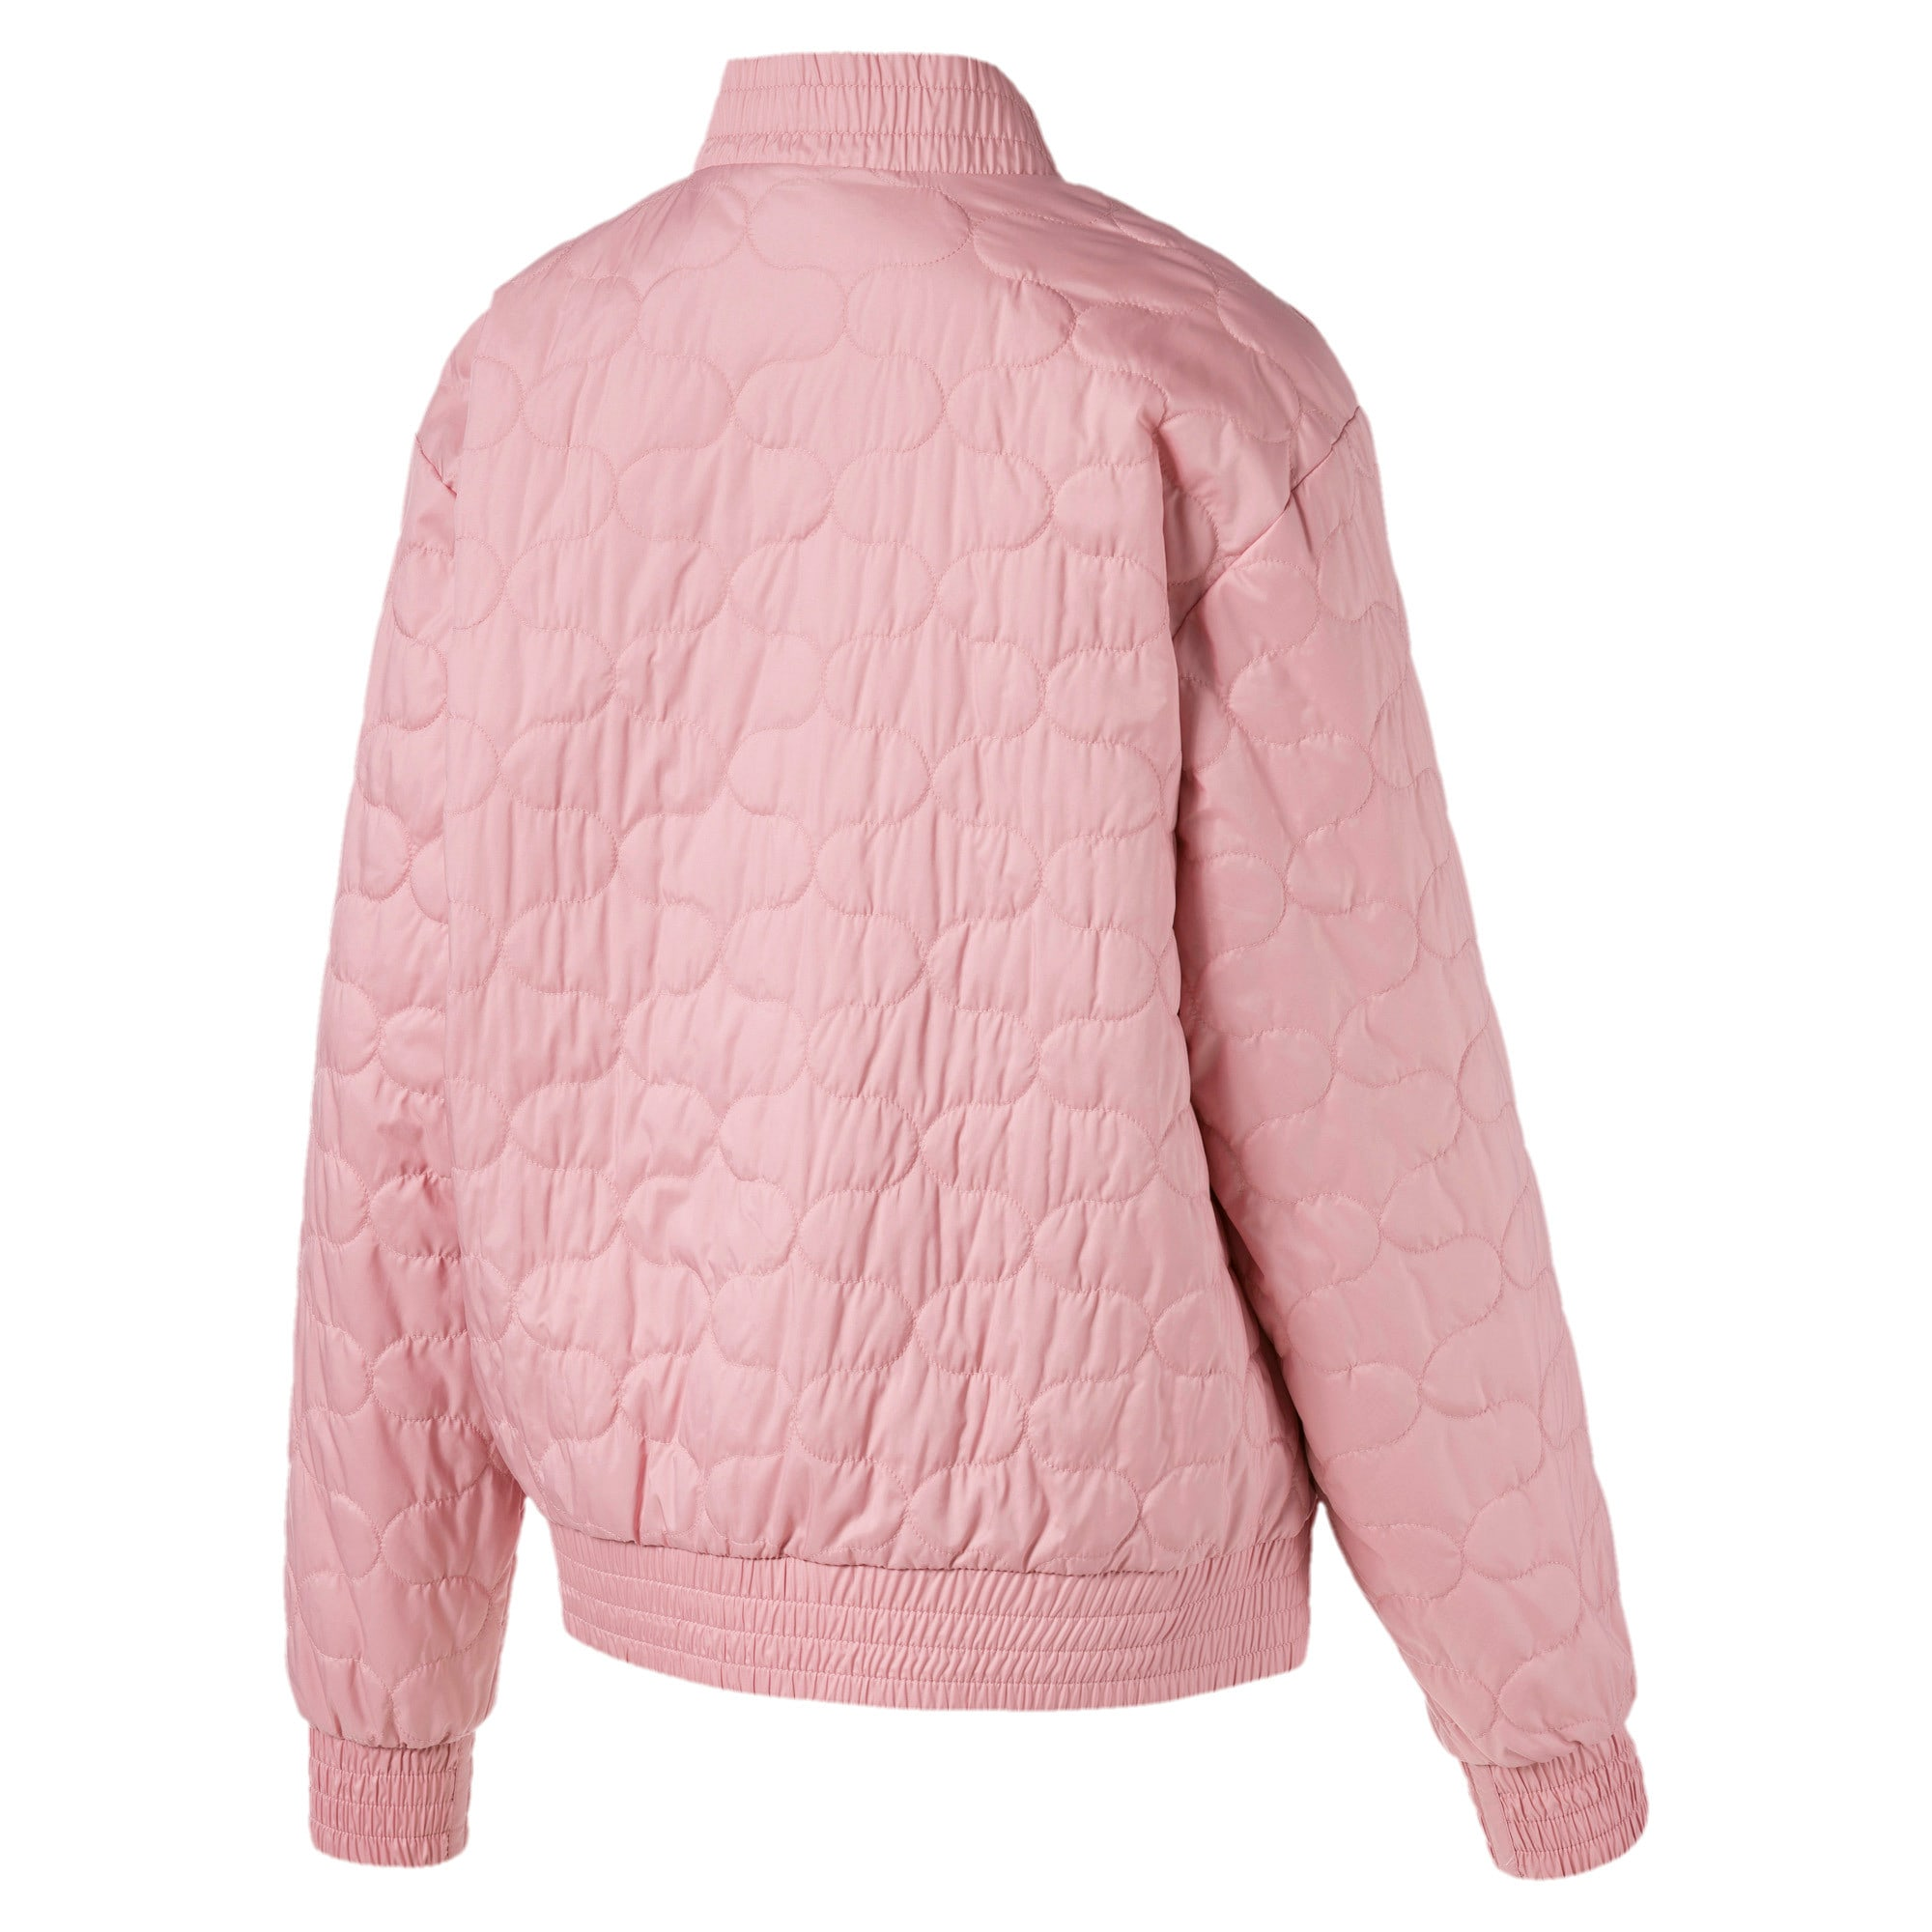 Thumbnail 5 of Damen Gewebte Bomberjacke, Bridal Rose, medium